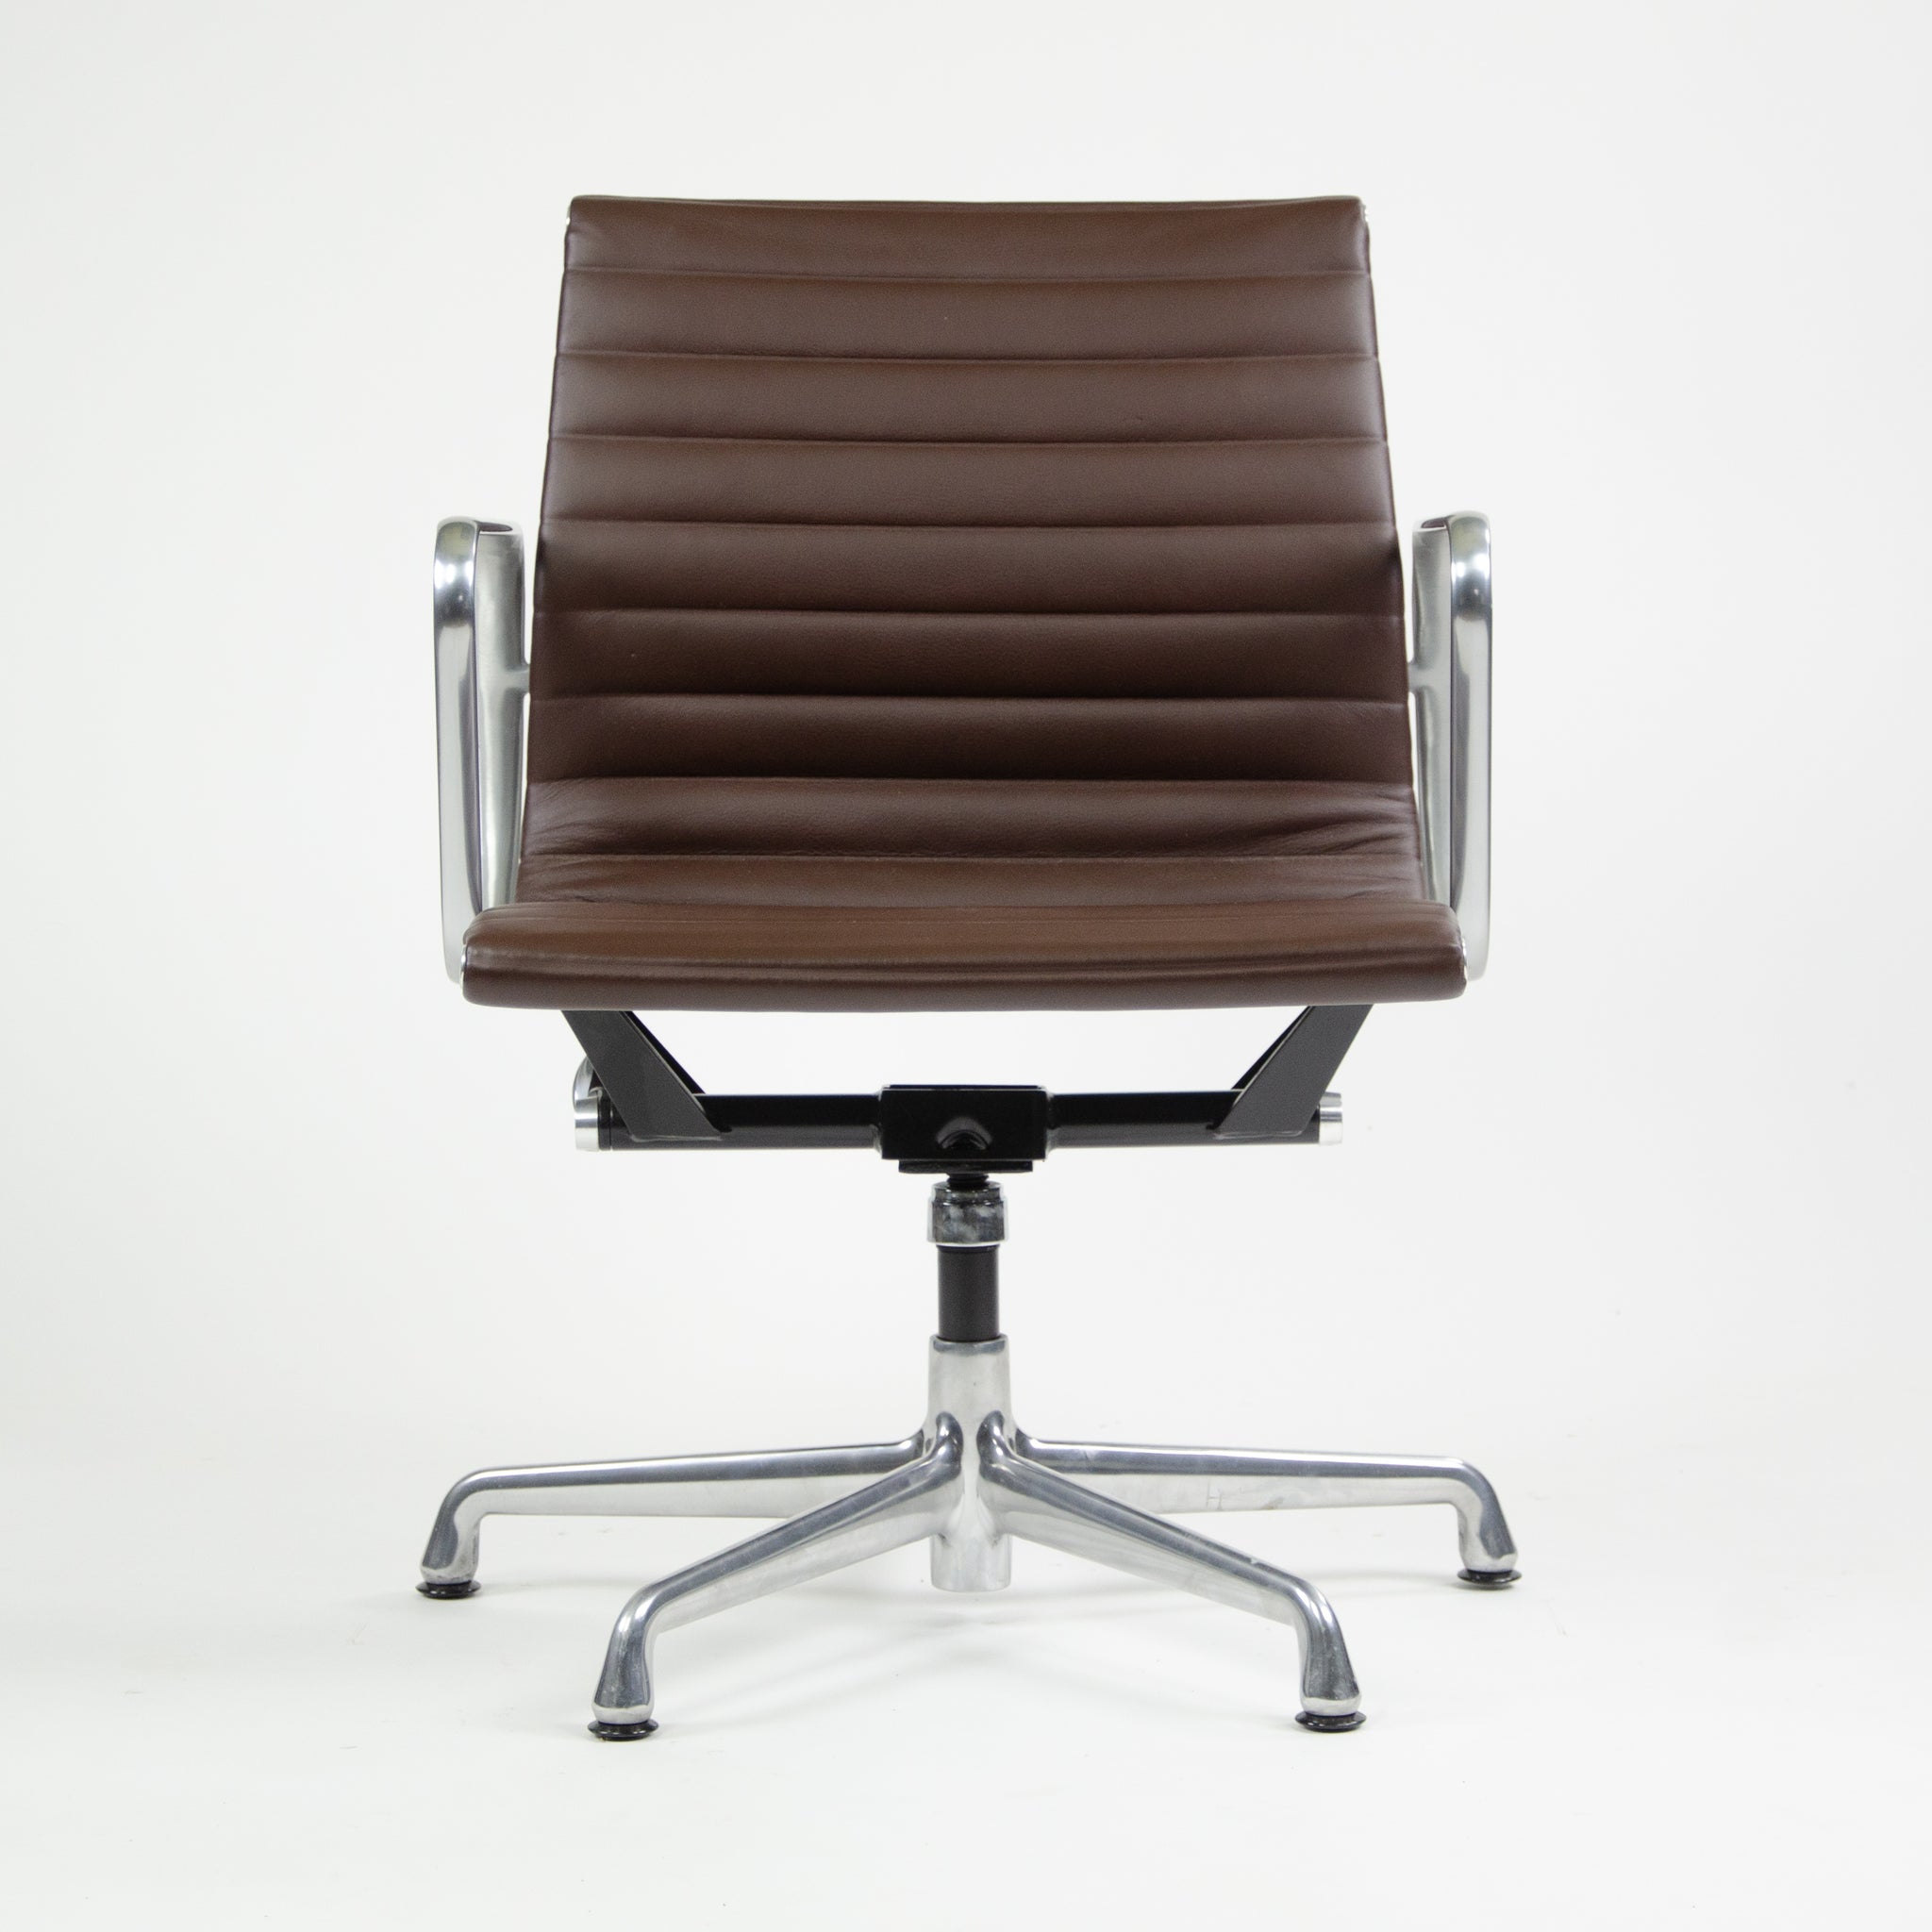 Herman Miller Eames Aluminum Group Executive Chair Brown Leather 2015